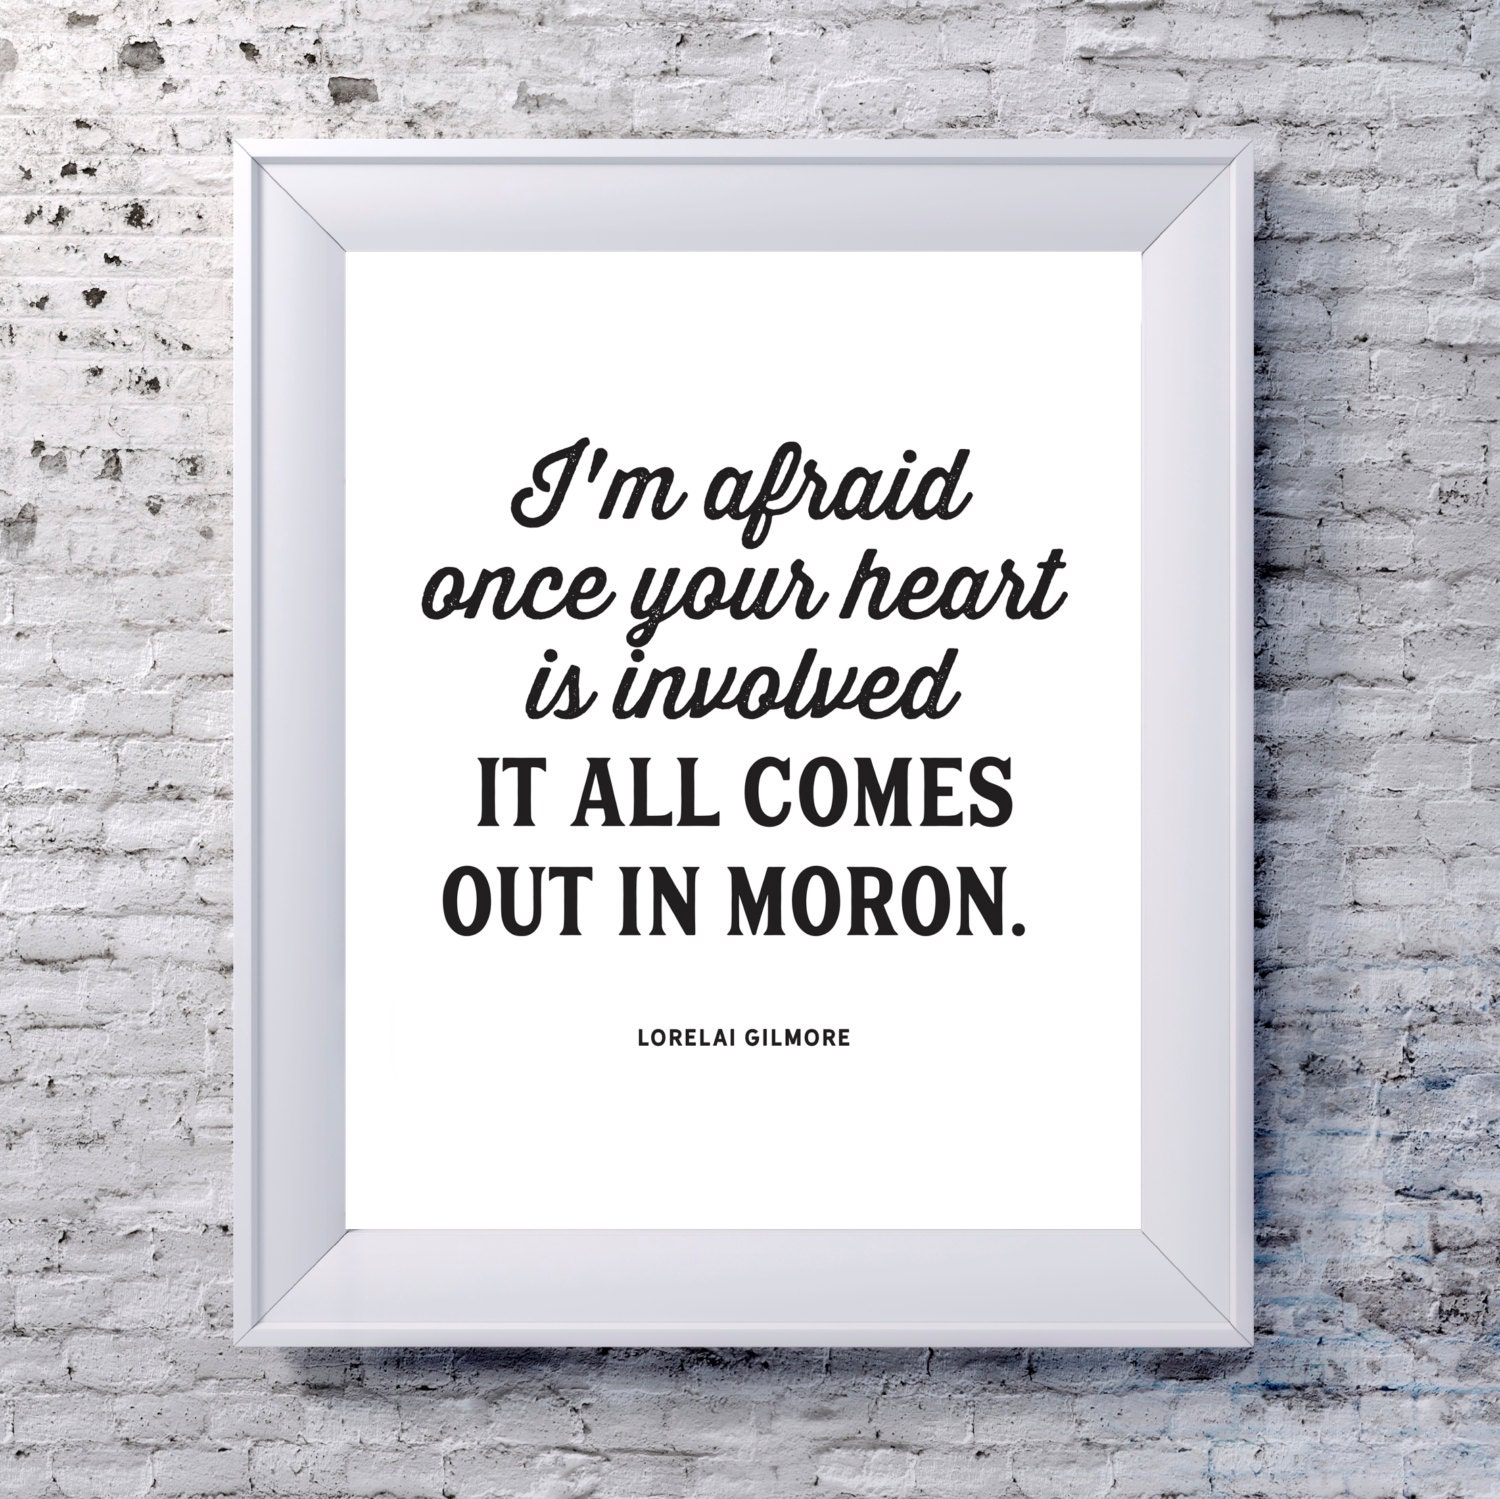 Lorelai Gilmore Quotes: Lorelai Gilmore Quote I'm Afraid Once Your